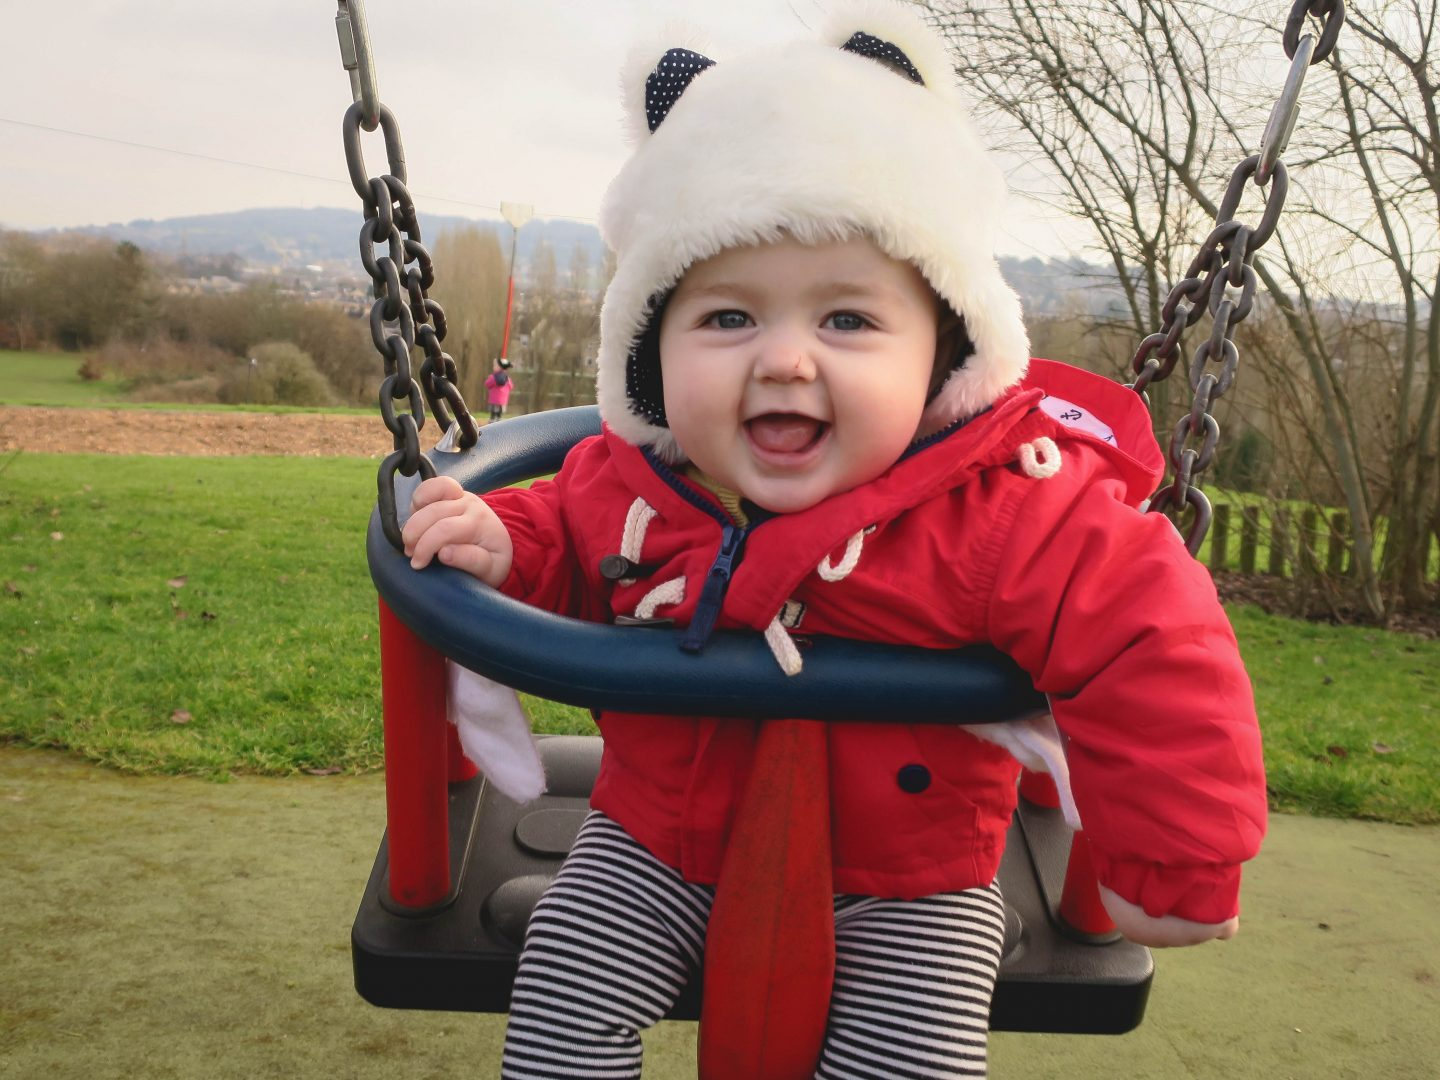 Nine Month Old Enjoying The Swings